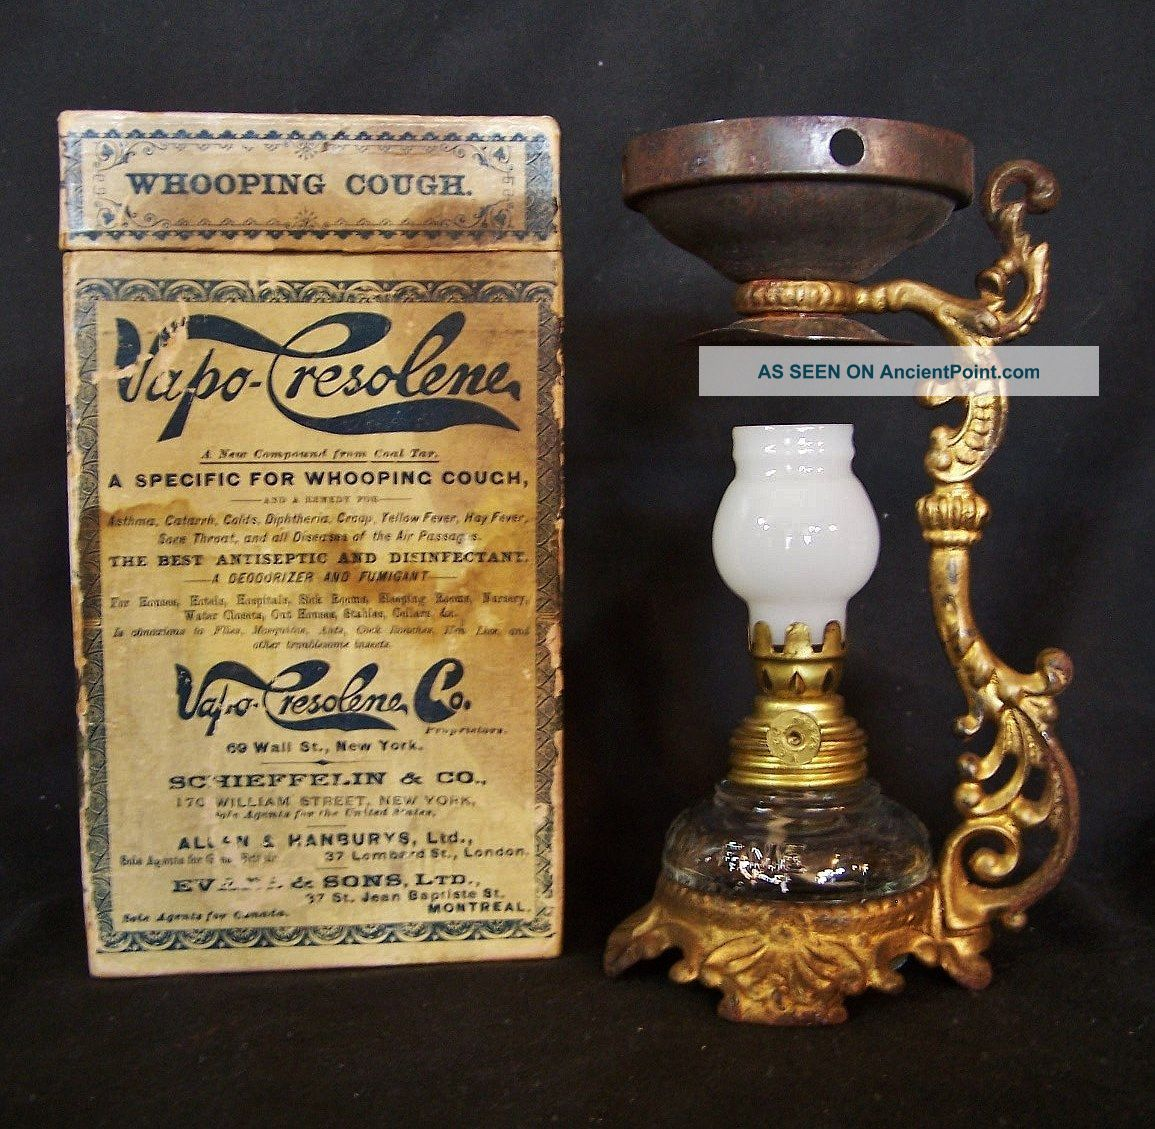 Antique Vapo Cresolene Miniature Oil Lamp Medical Vaporizer C1880 W/ Box Other Medical Antiques photo